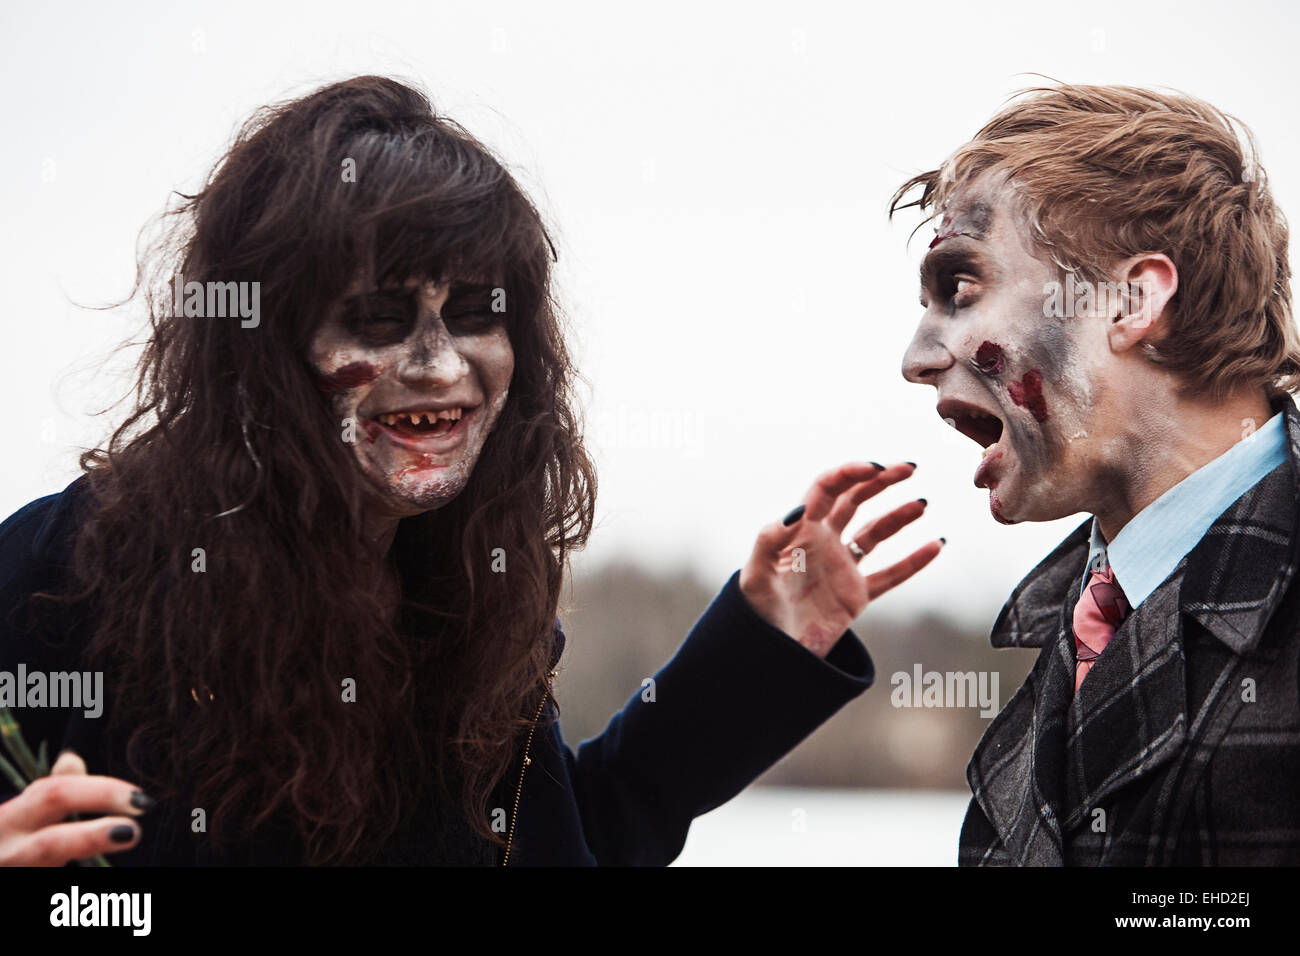 Toothless zombie woman and her frightened boyfriend - Stock Image